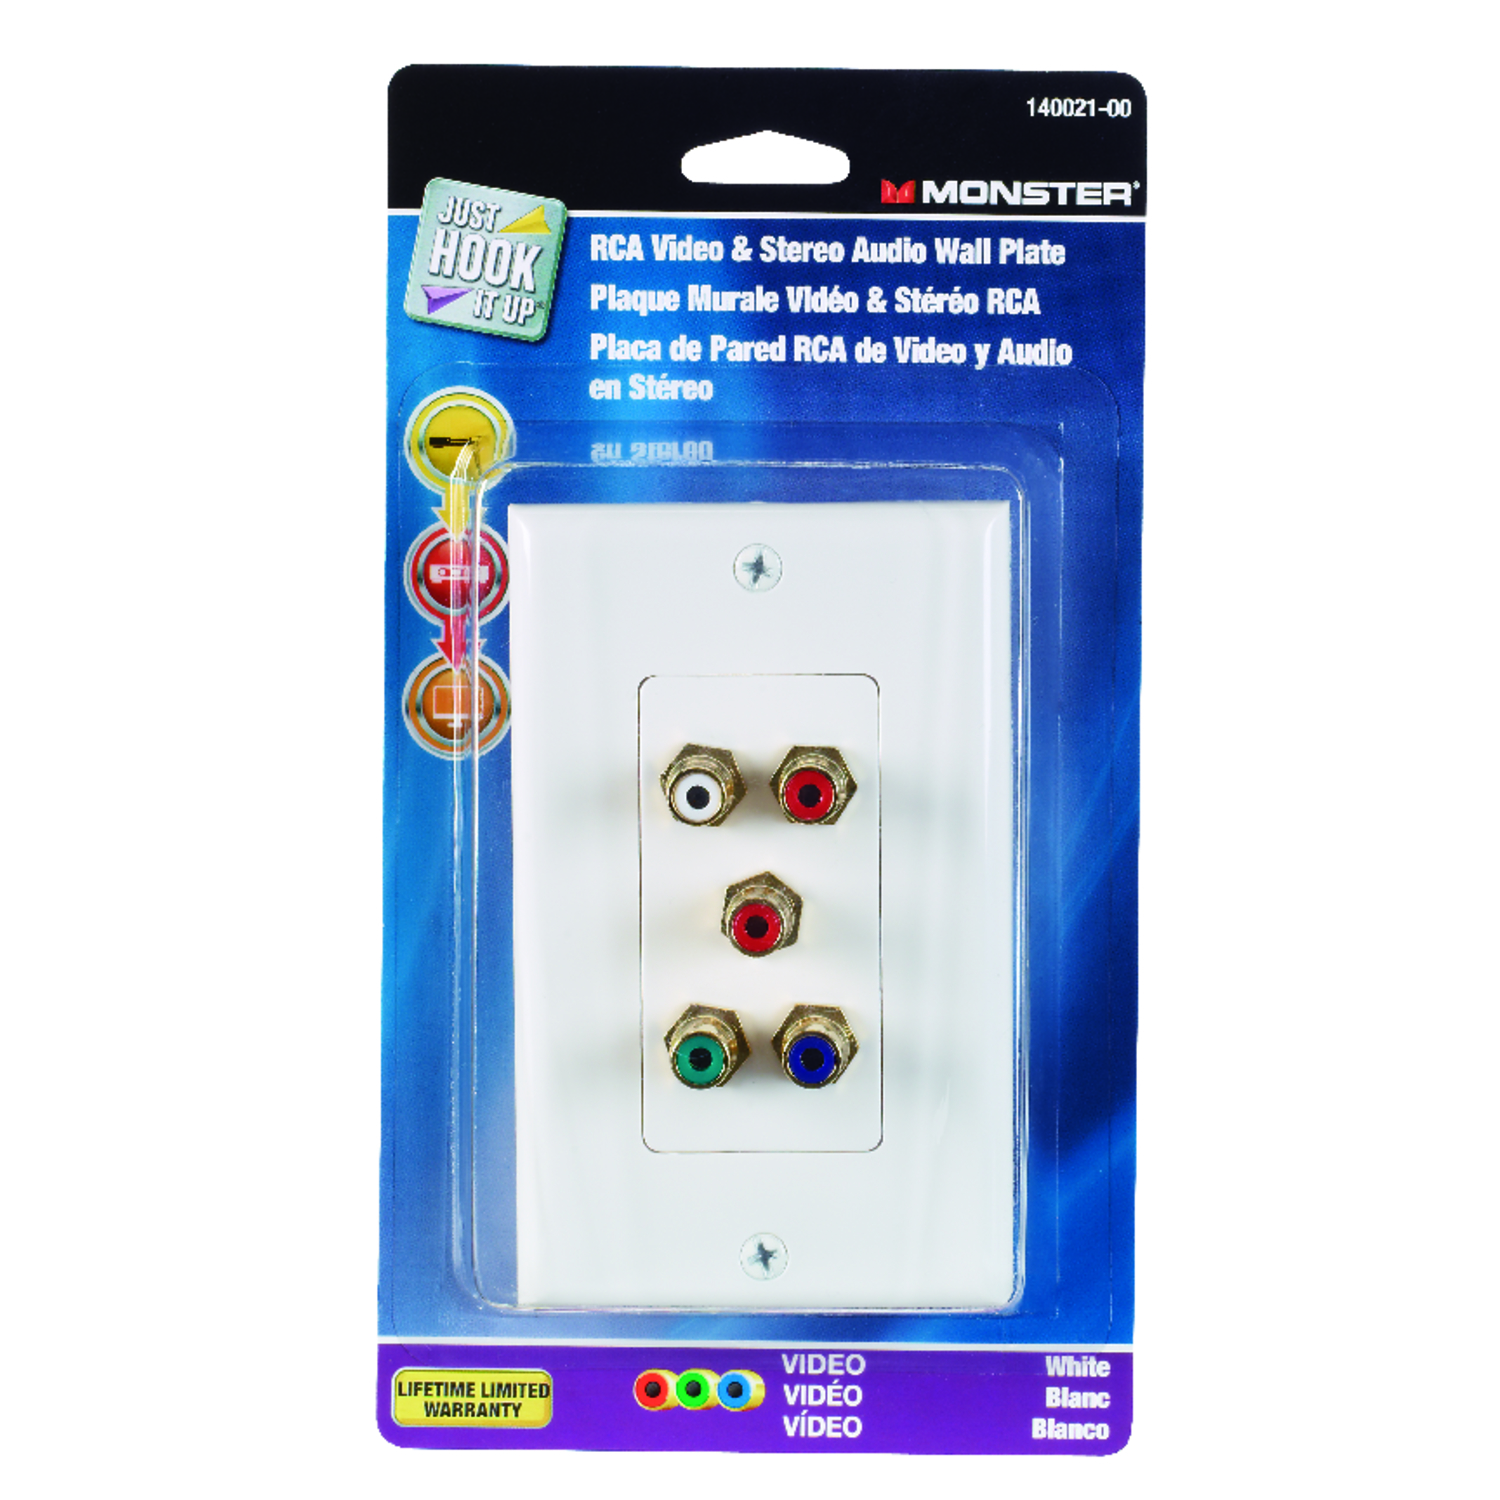 Monster Cable  Just Hook It Up  White  1 gang Plastic  Wall Plate  1 pk RCA